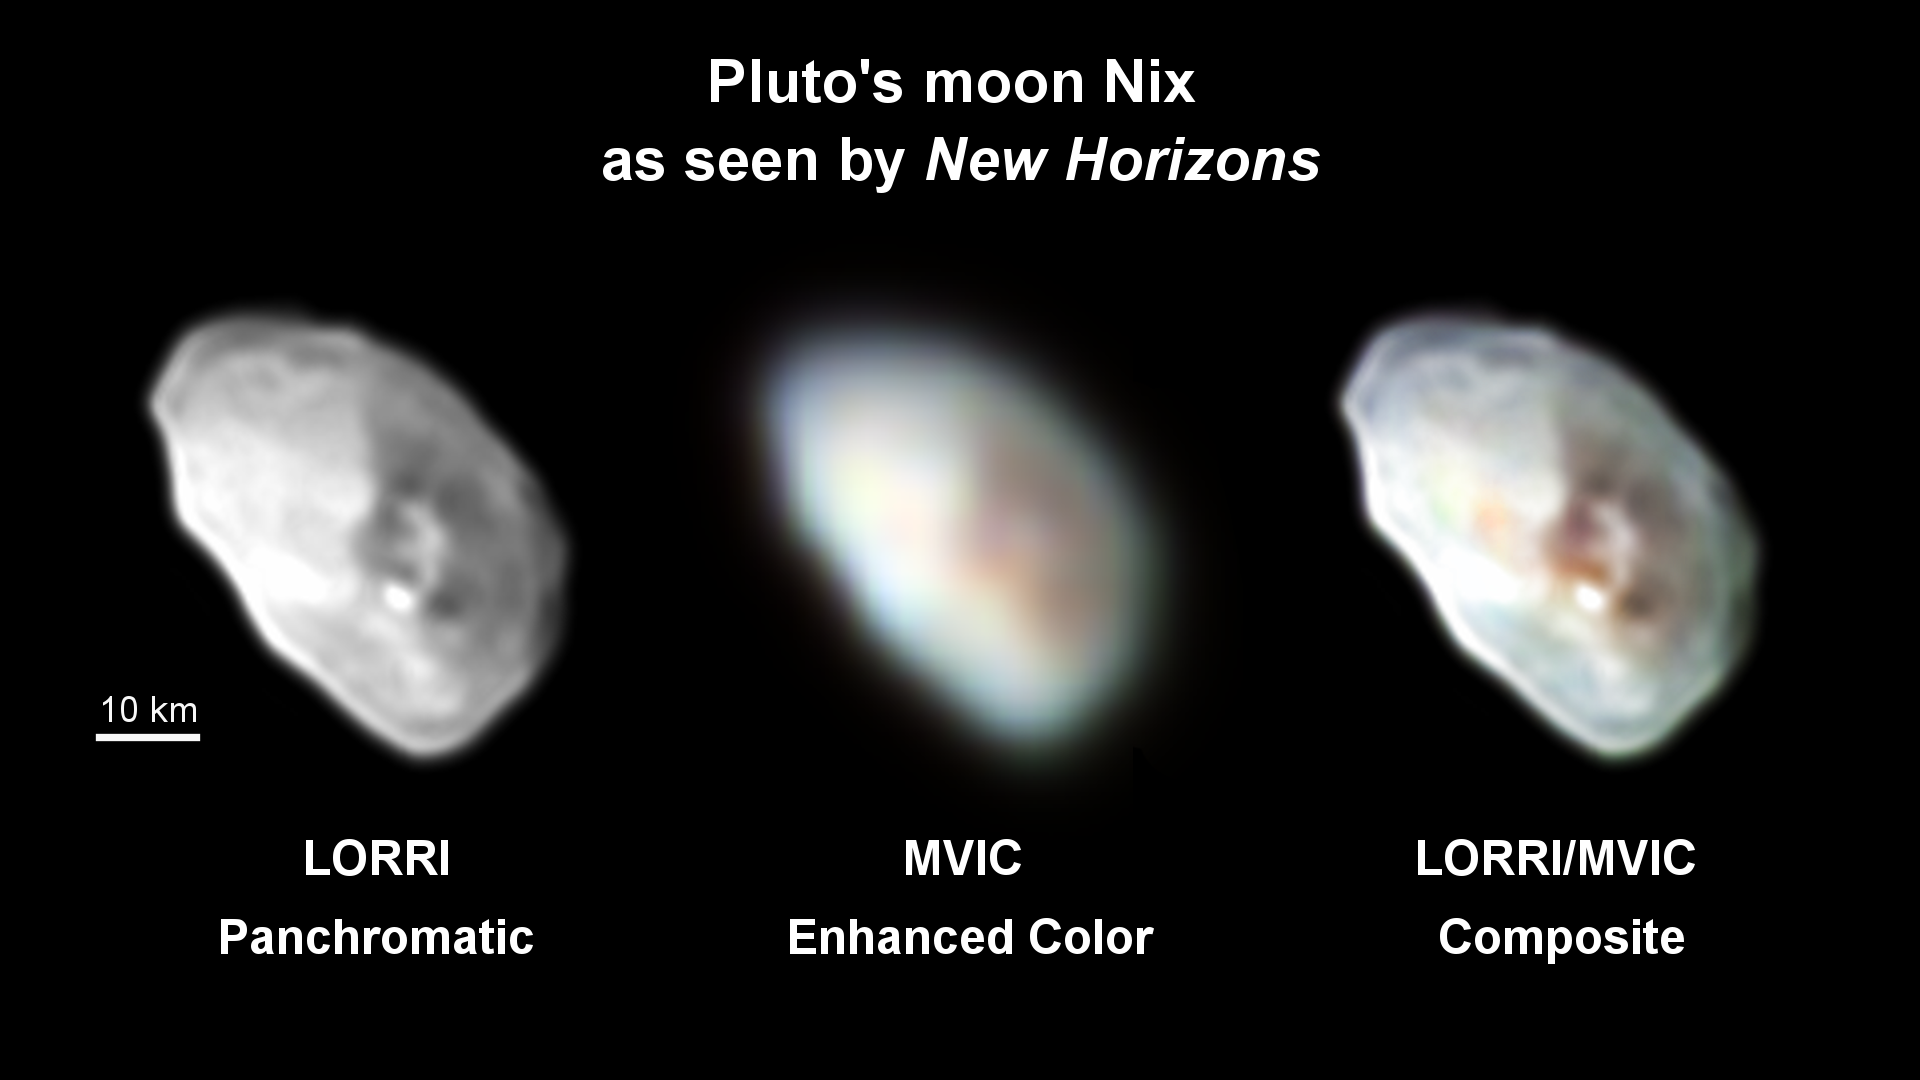 pluto s small moons nix and hydra pluto new horizons 1920x1080 png